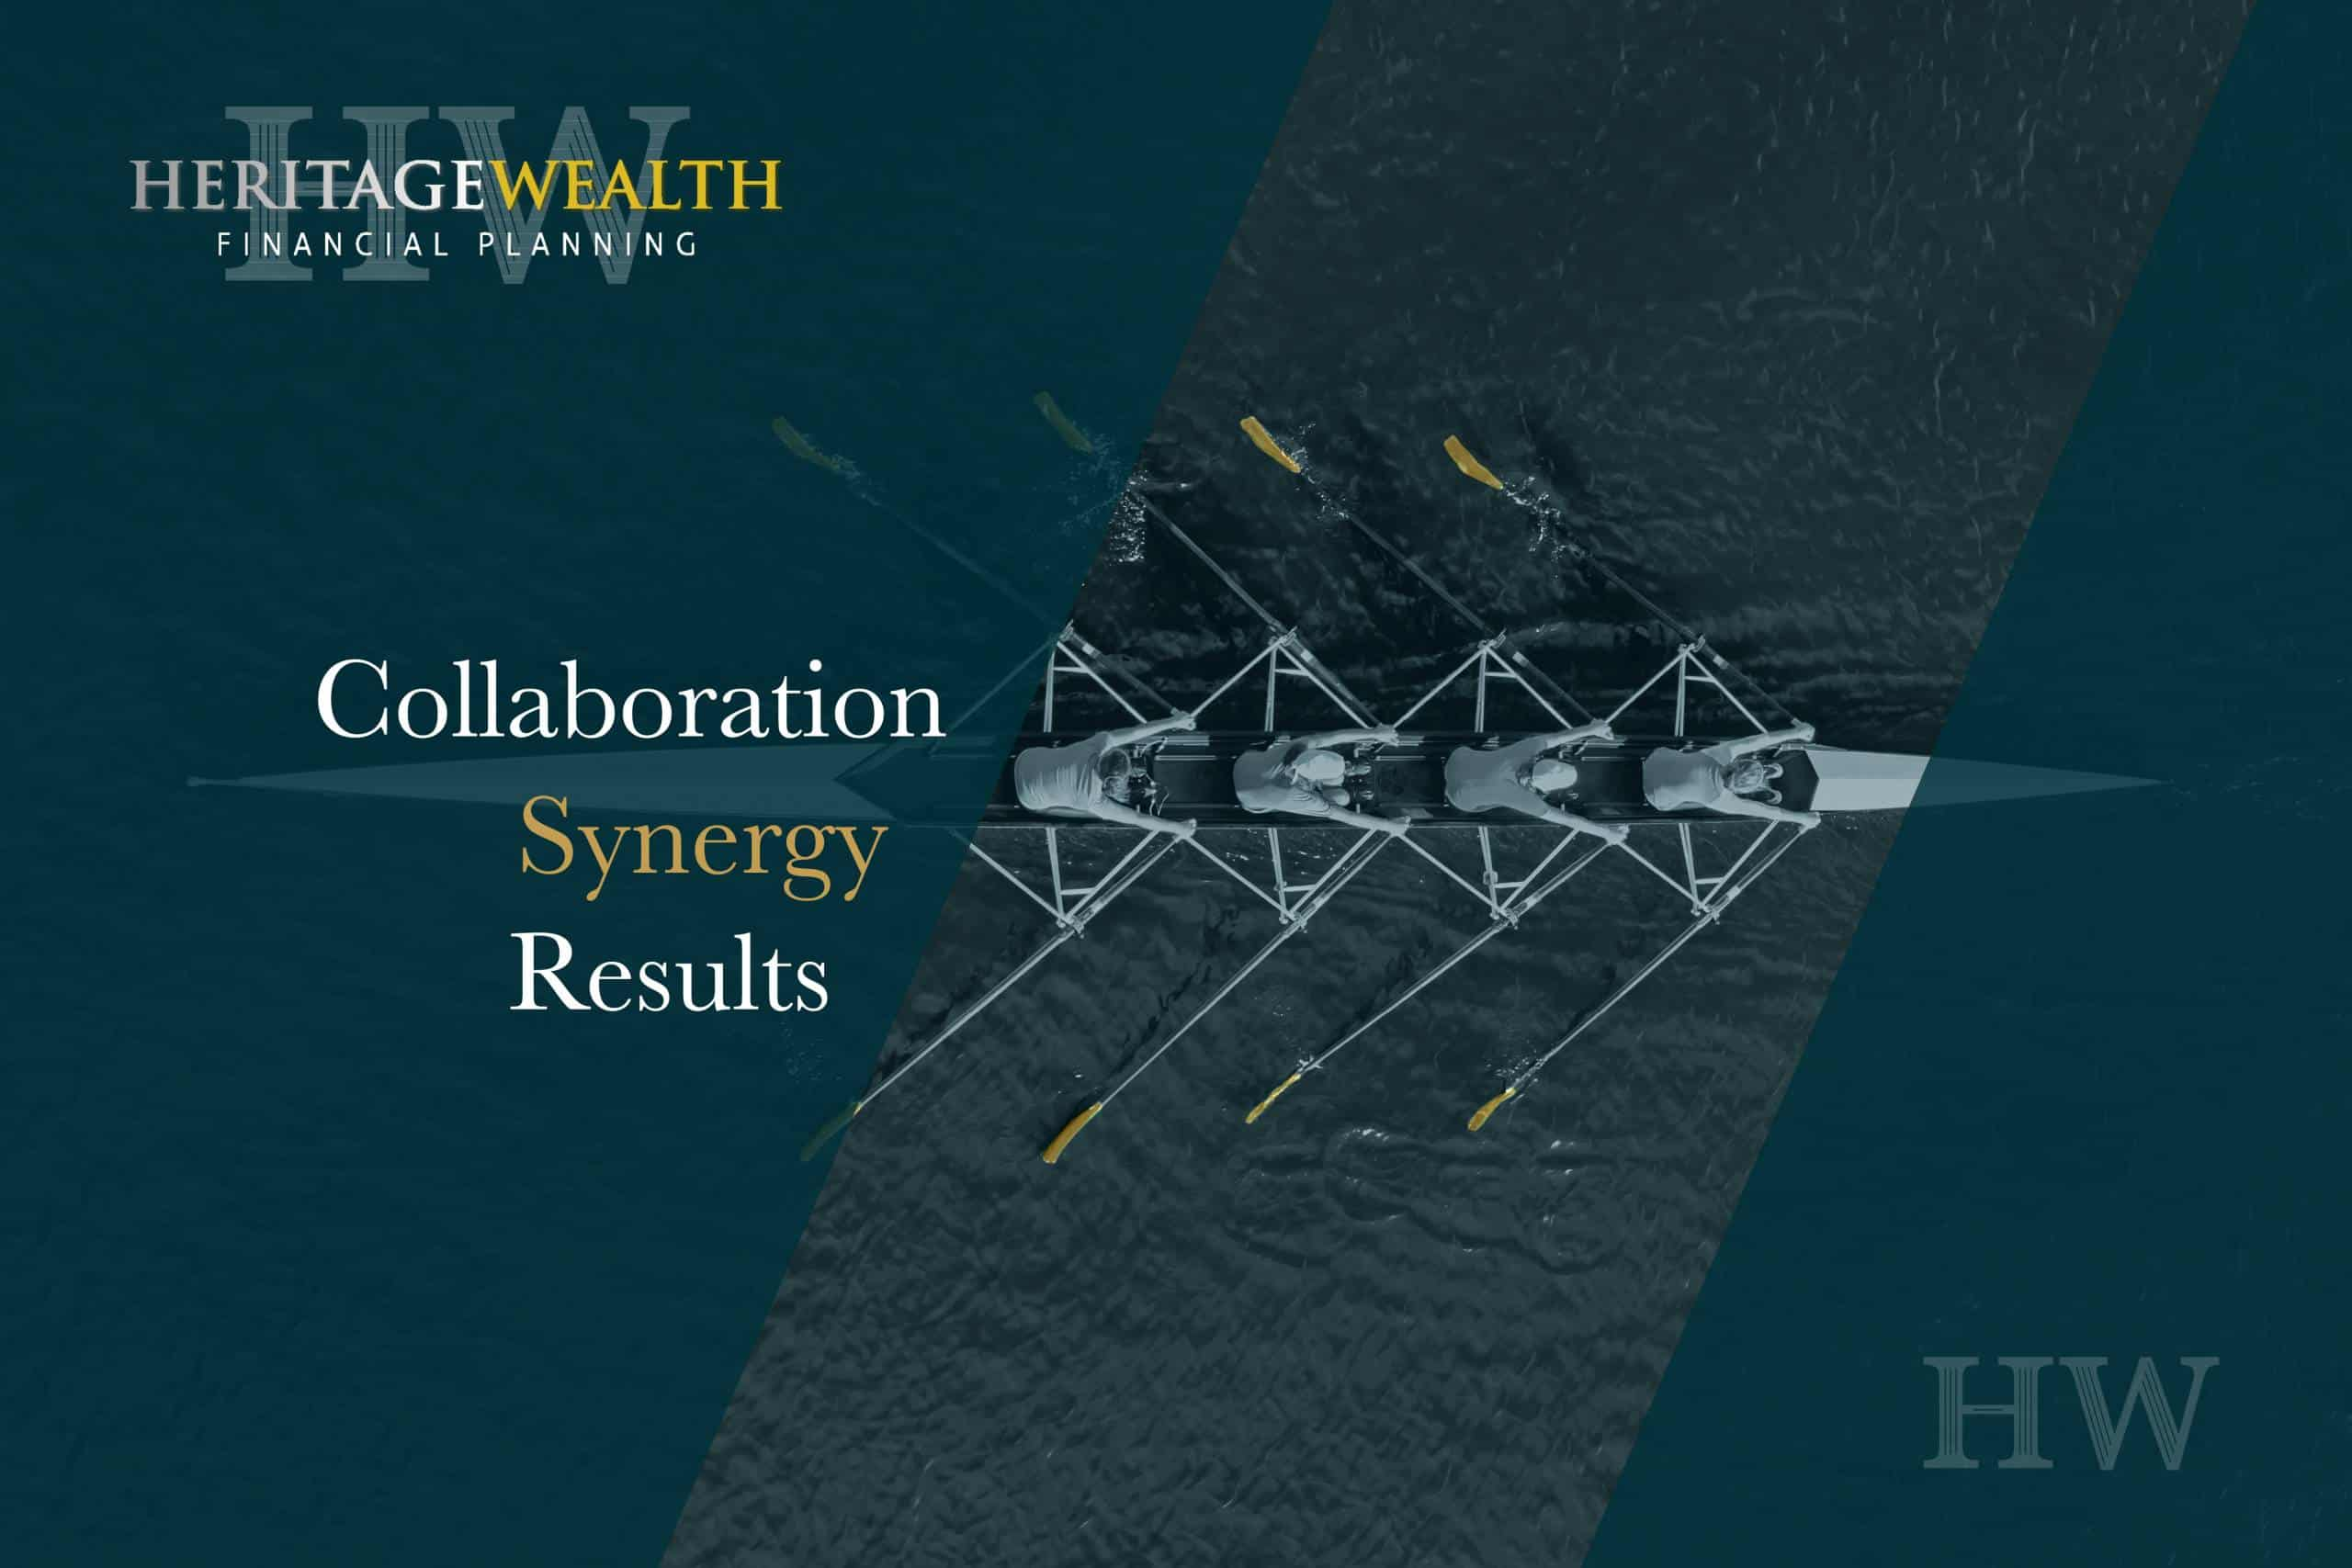 Collaboration Synergy Results